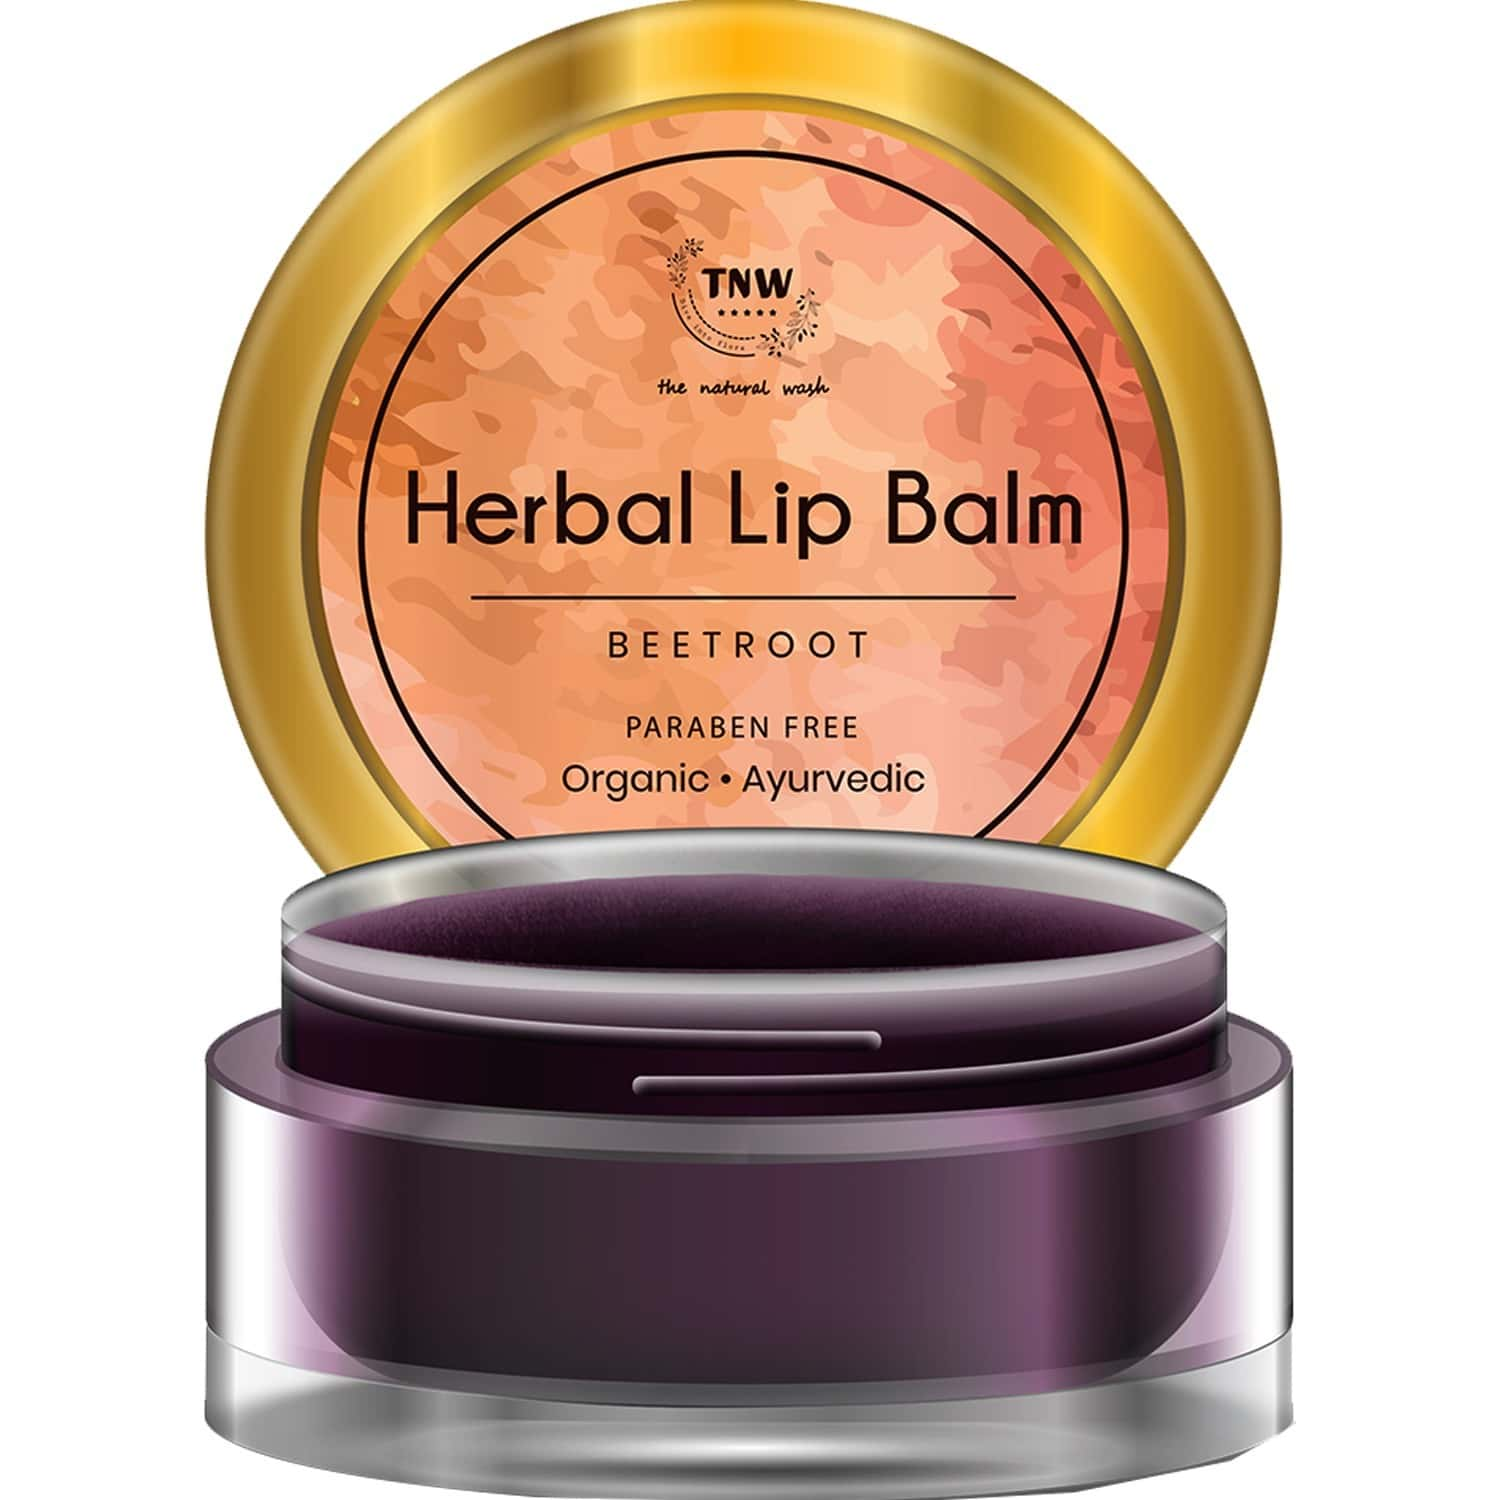 Tnw -the Natural Wash Herbal Beetroot Lip Balm An Ayurvedic Balm For Soft And Supple Lips - 5 Gm